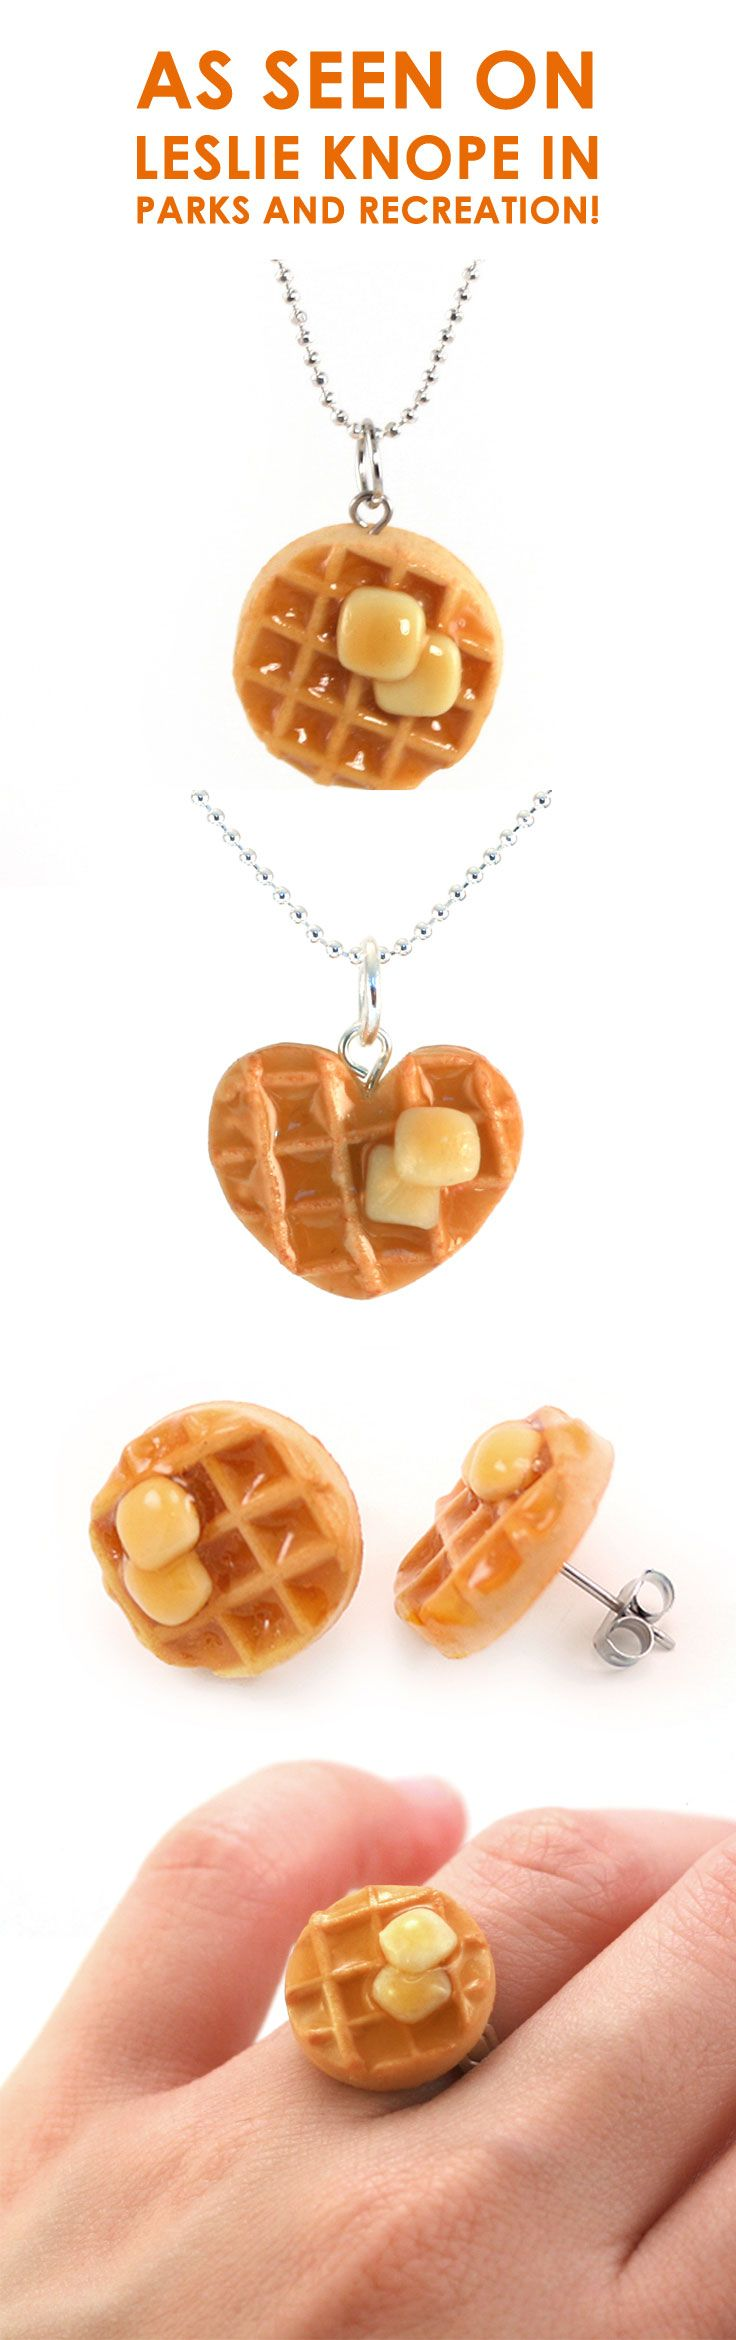 Can't figure out what to get your BFF? These scented waffle necklaces, ring and earrings make the perfect gift for anyone Parks and Recreation and Leslie Knope obsessed! Gift the EXACT necklace Amy Poehler wore in episode Operation Ann for the Leslie in your life. It even smells like maple syrup. Shop now!